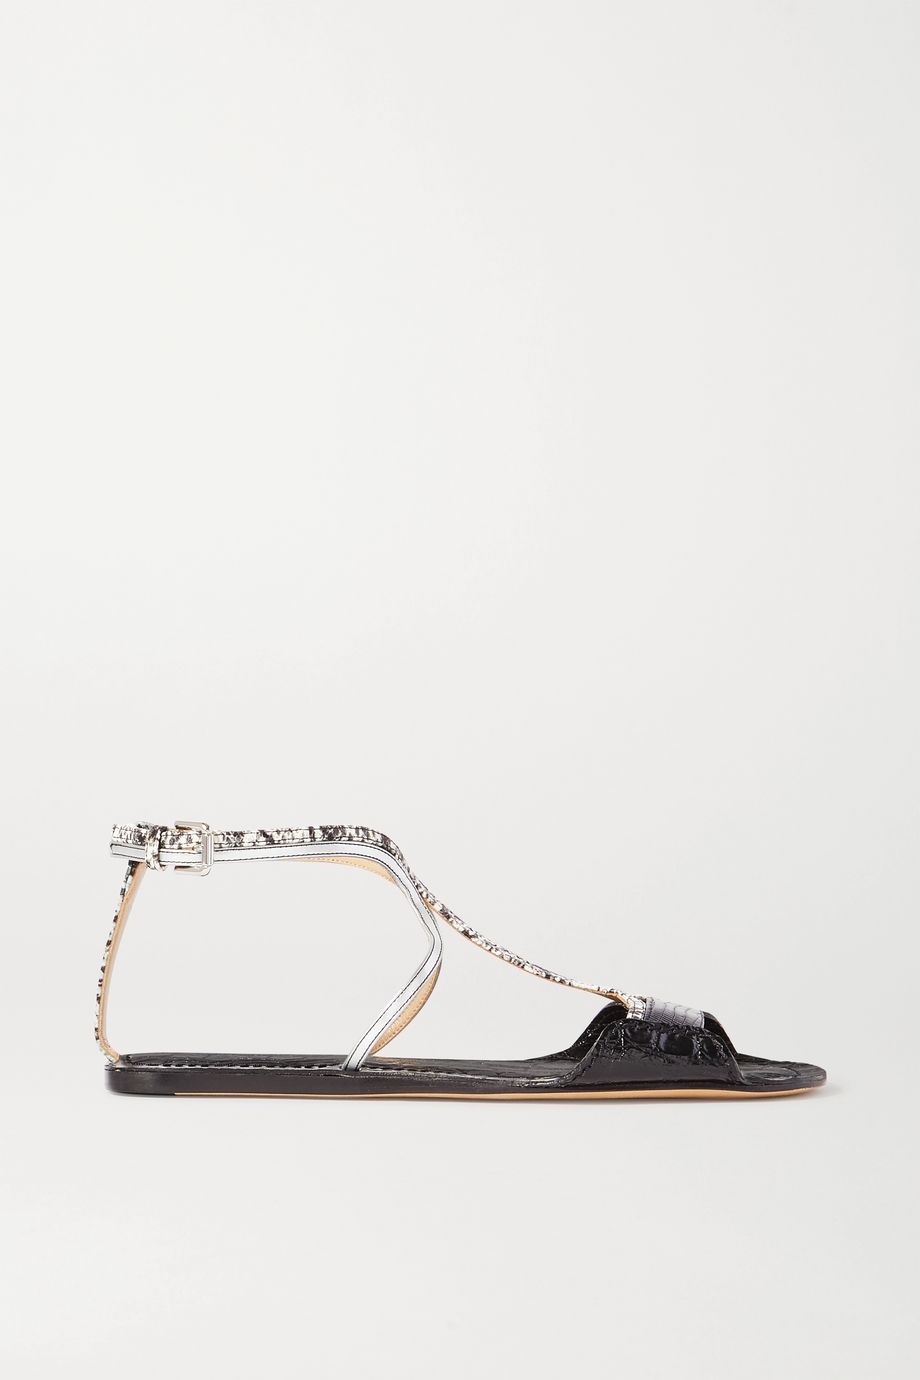 Chloé Carla paneled leather sandals